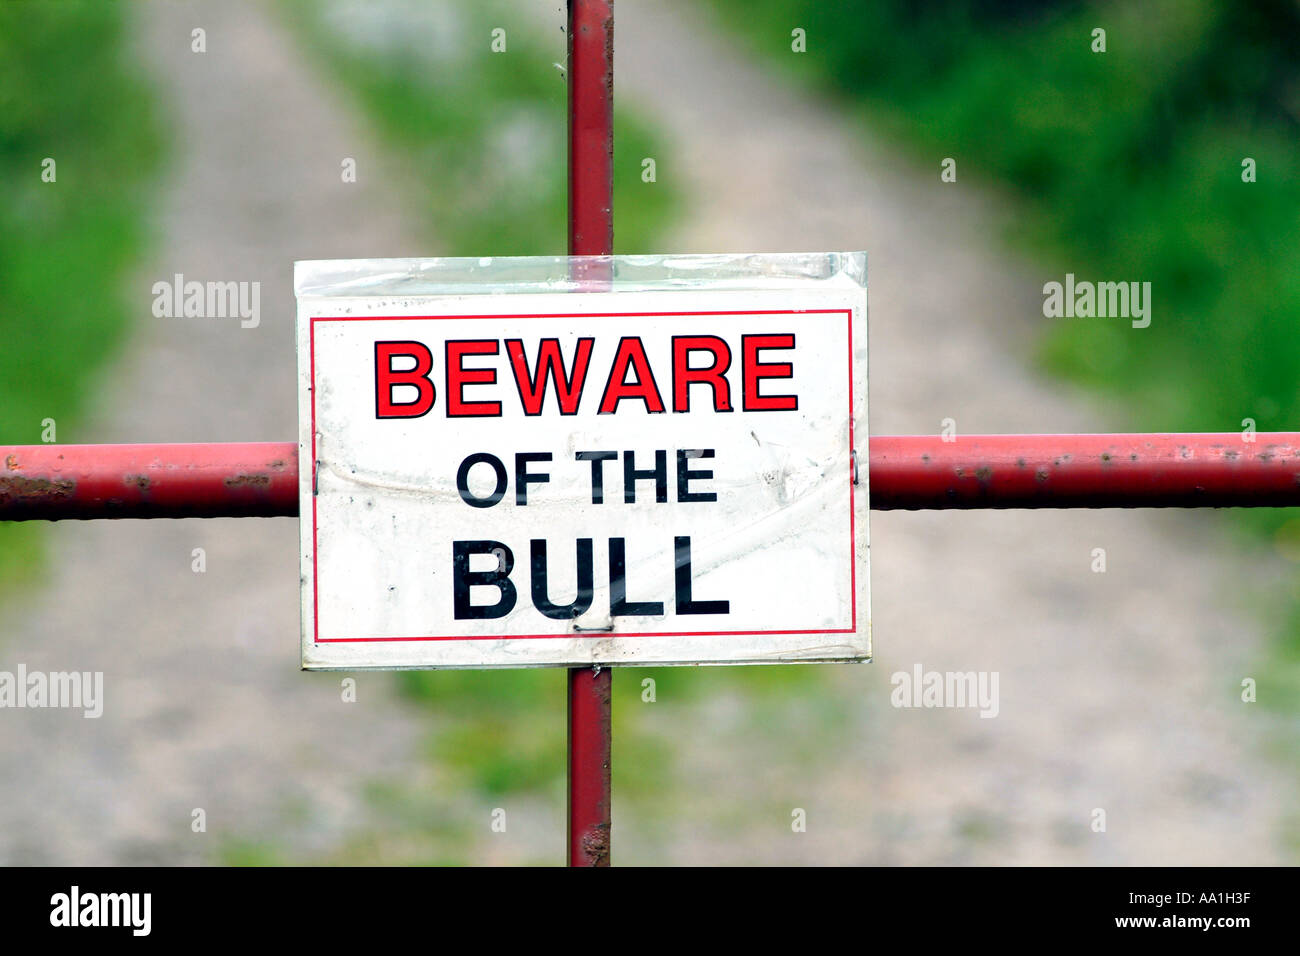 A 'Beware of the bull' sign in Ireland. - Stock Image